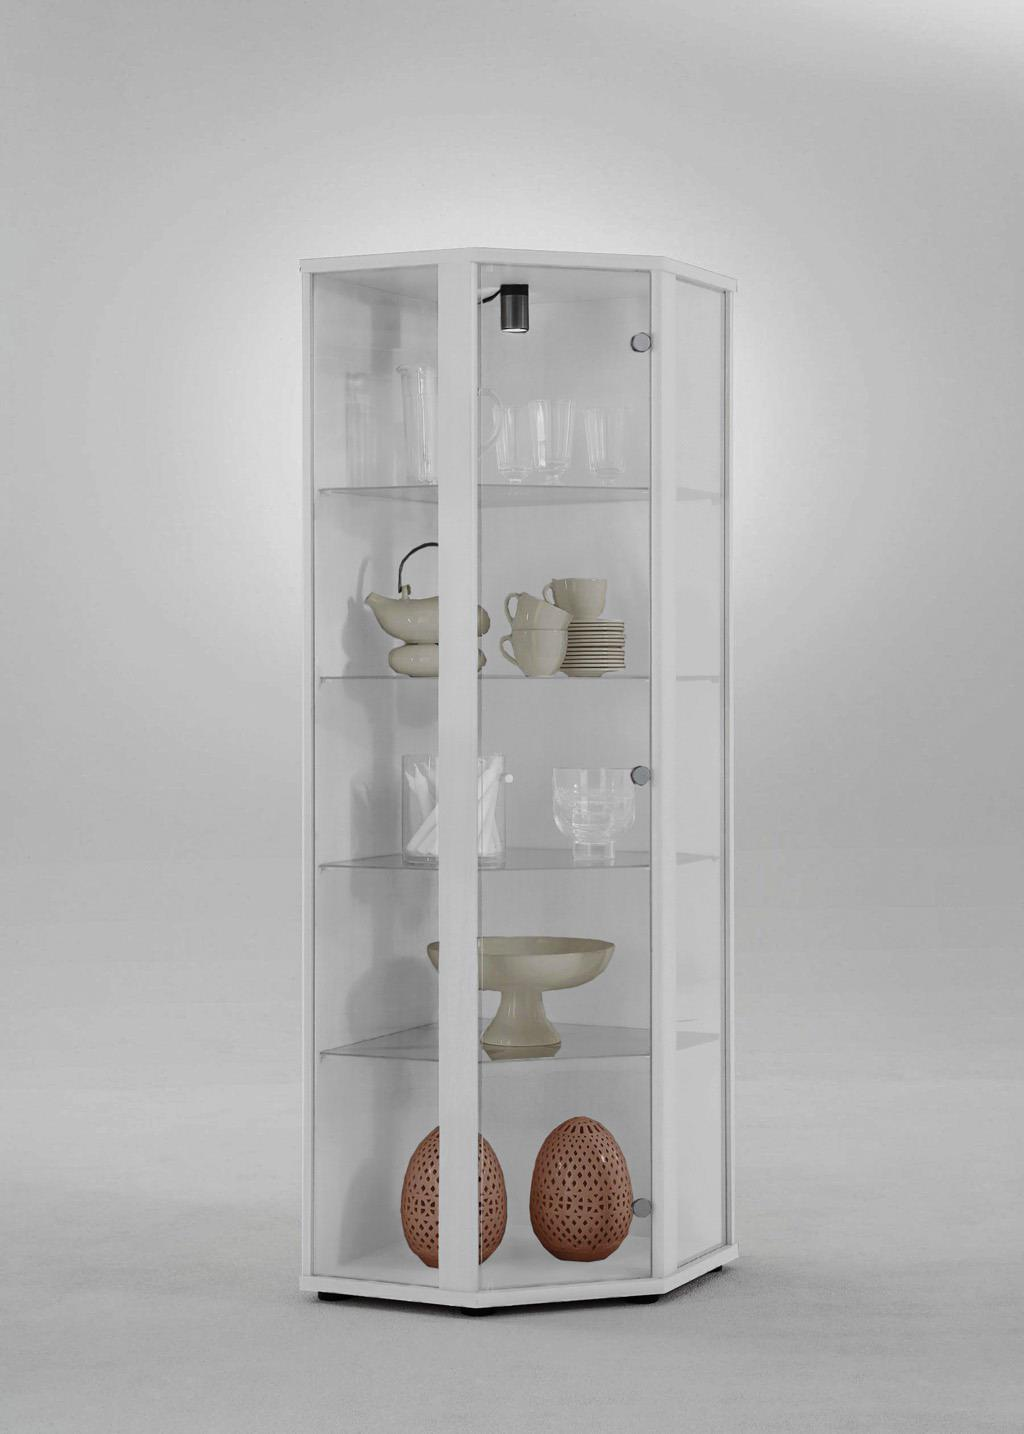 glasvitrine sammelvitrine eckvitrine vitrine beleuchtung. Black Bedroom Furniture Sets. Home Design Ideas